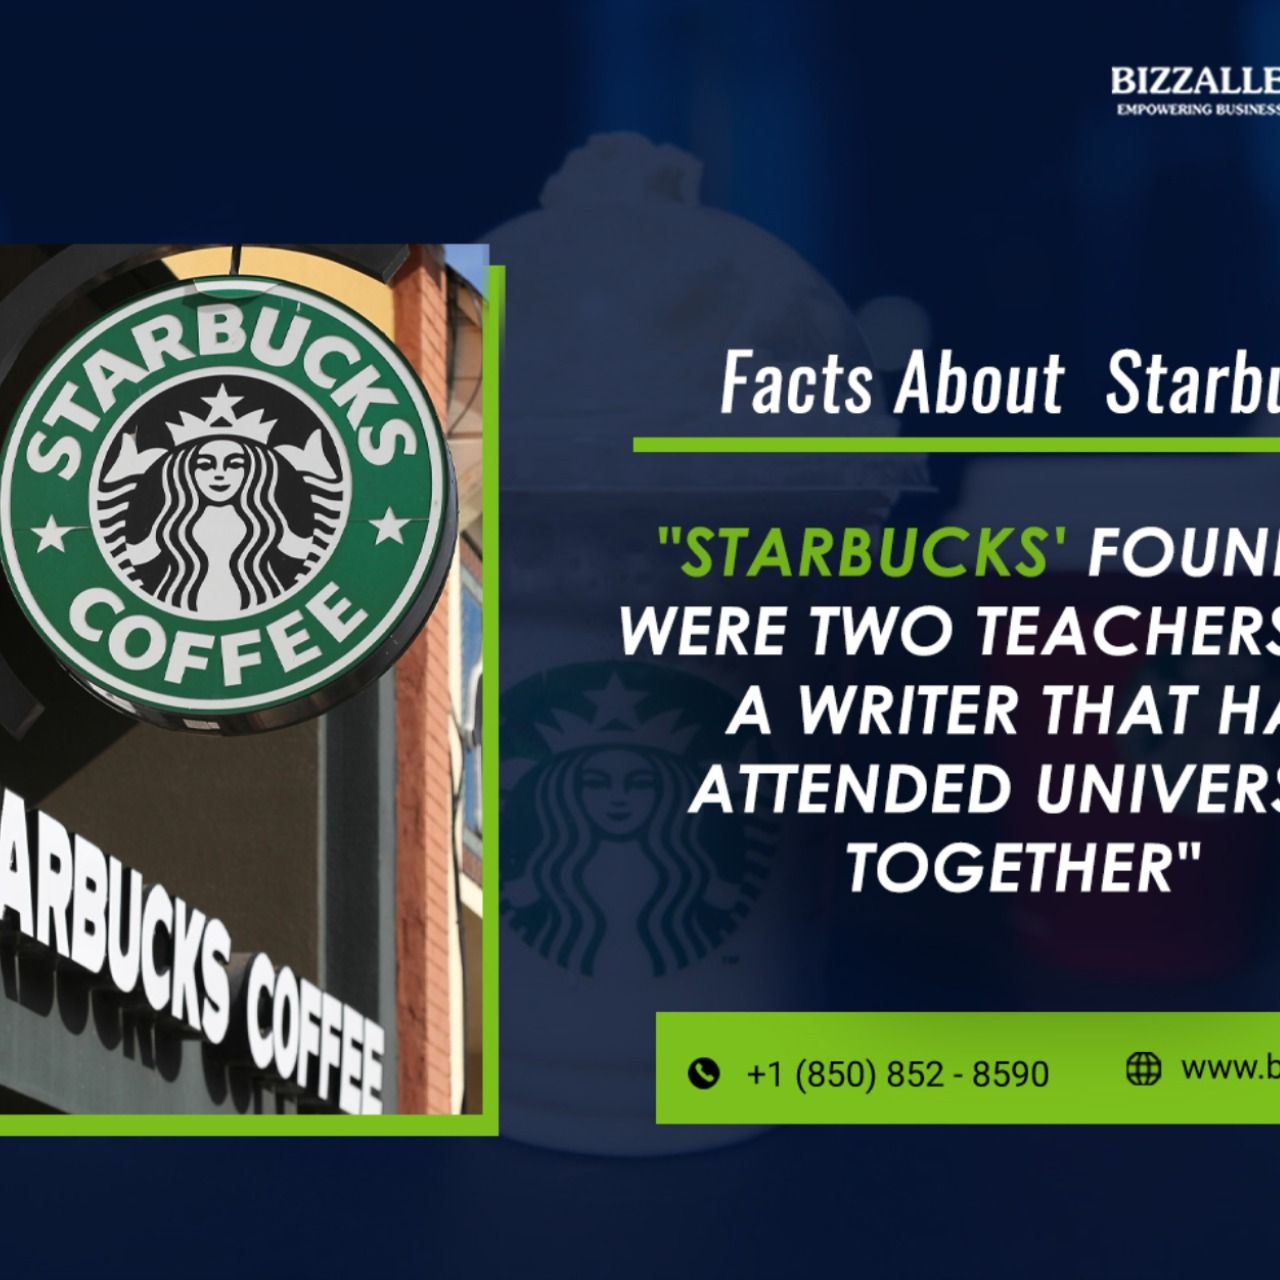 Starbucks Facts in 2020 Business blog, Starting a